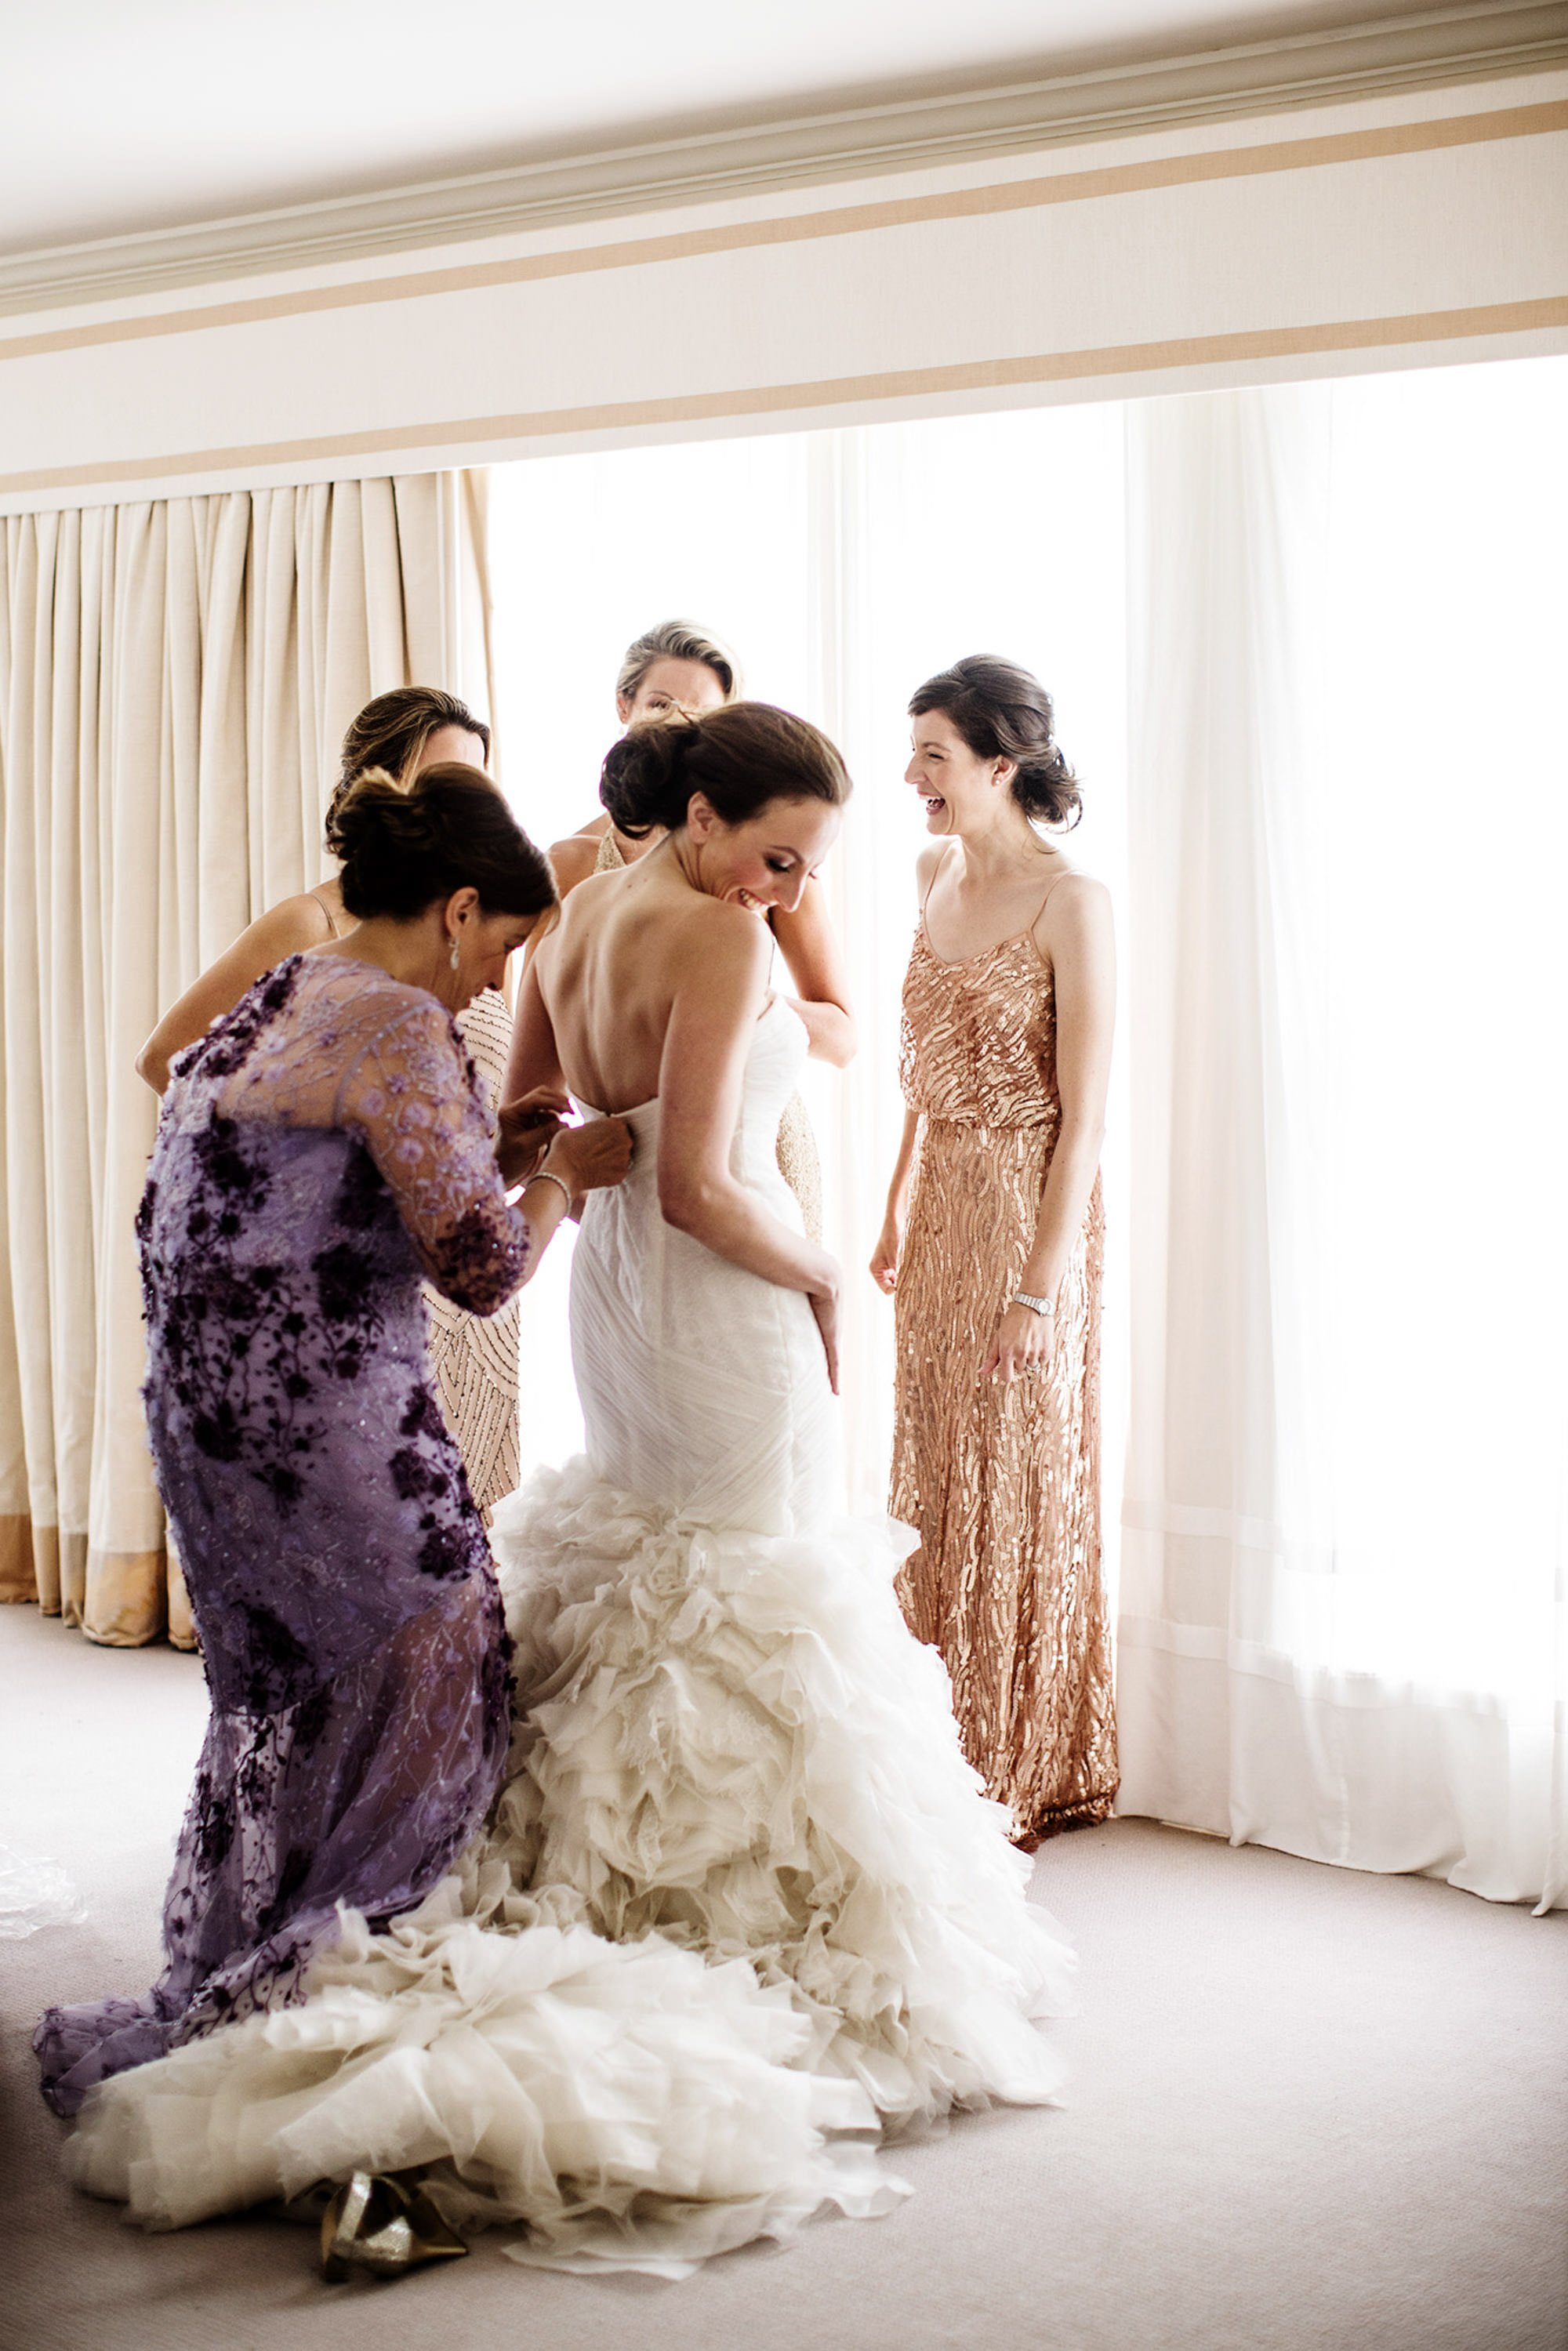 The mother of the bride helps put on her daughter's wedding dress.